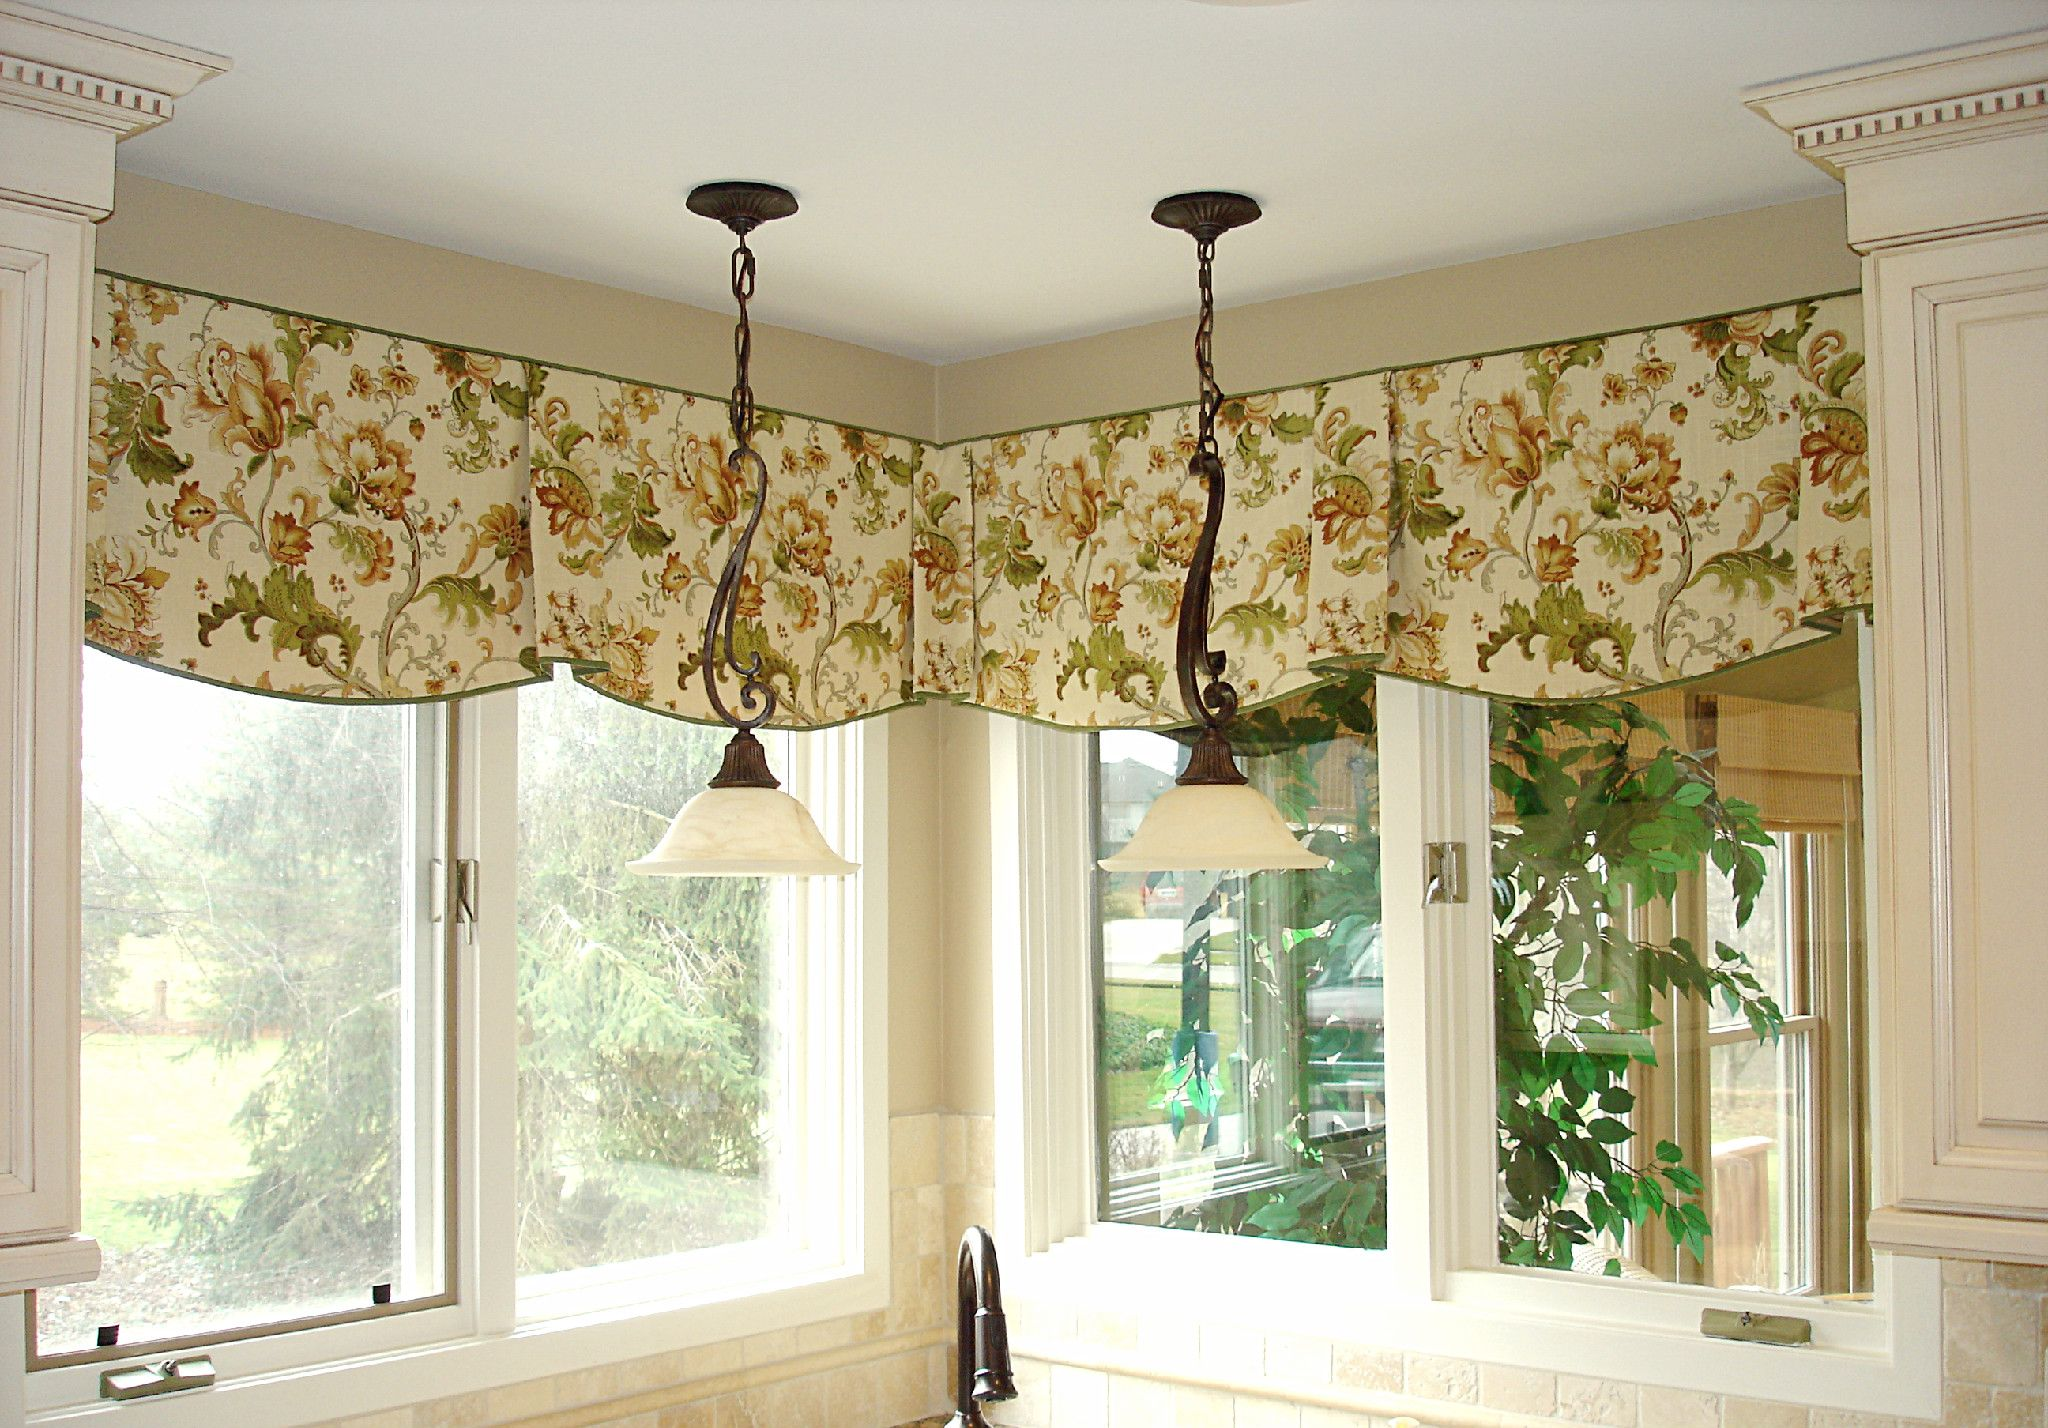 Kitchen window ideas  valence ideas  sewing projects  pinterest  kitchen curtains